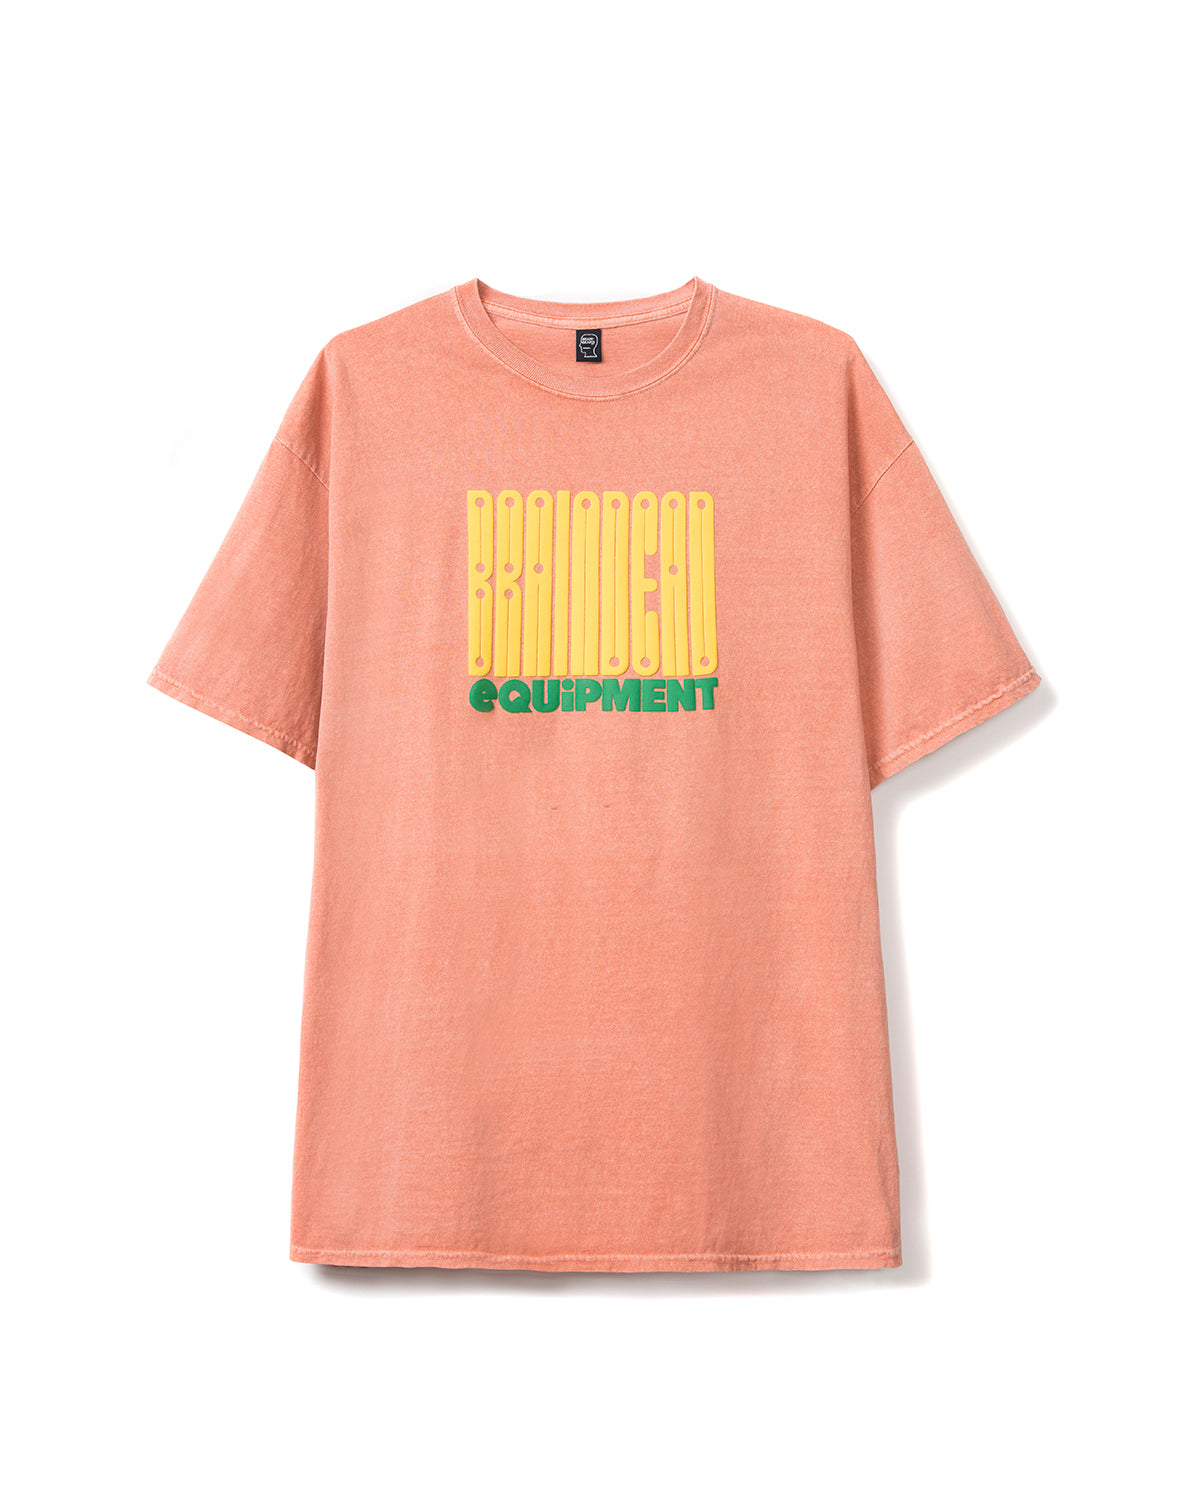 Equipment T-shirt - Terracotta - Brain Dead